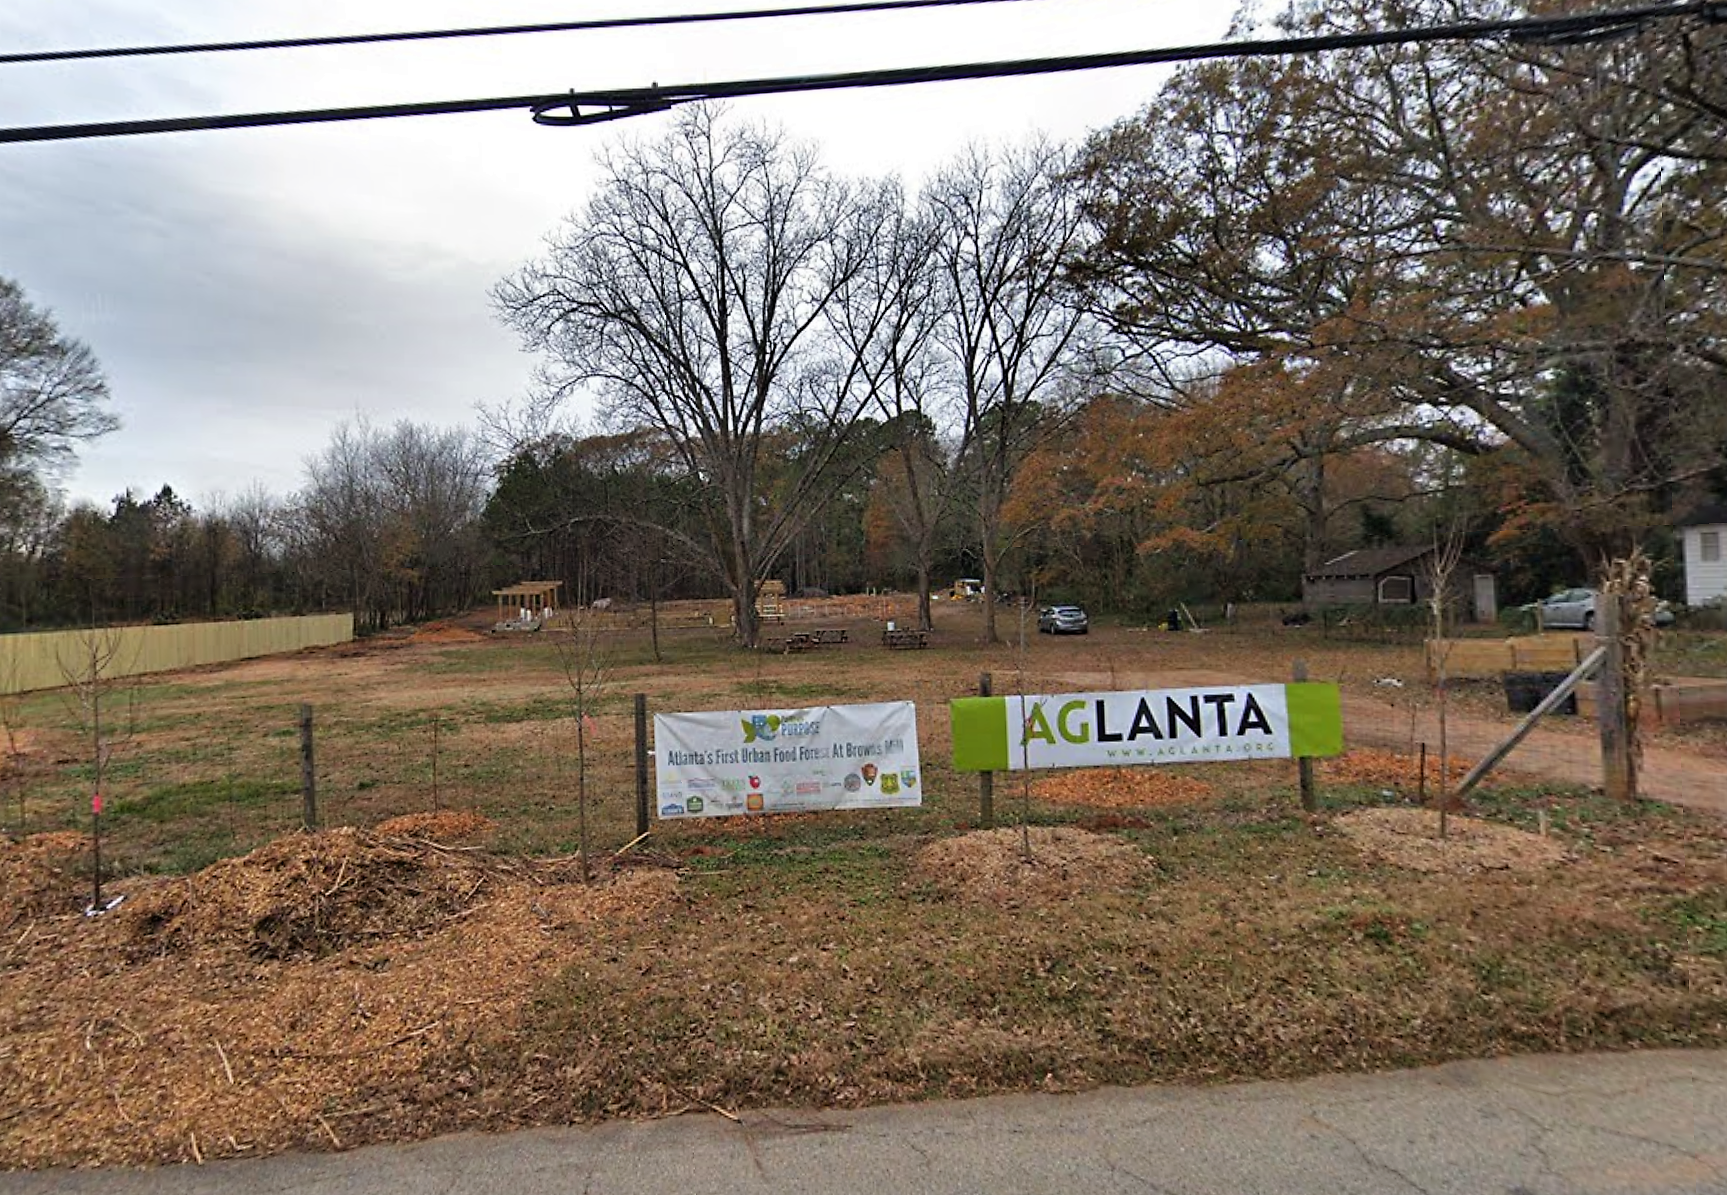 Seven acres of vacant Atlanta land to become nation's largest public food forest